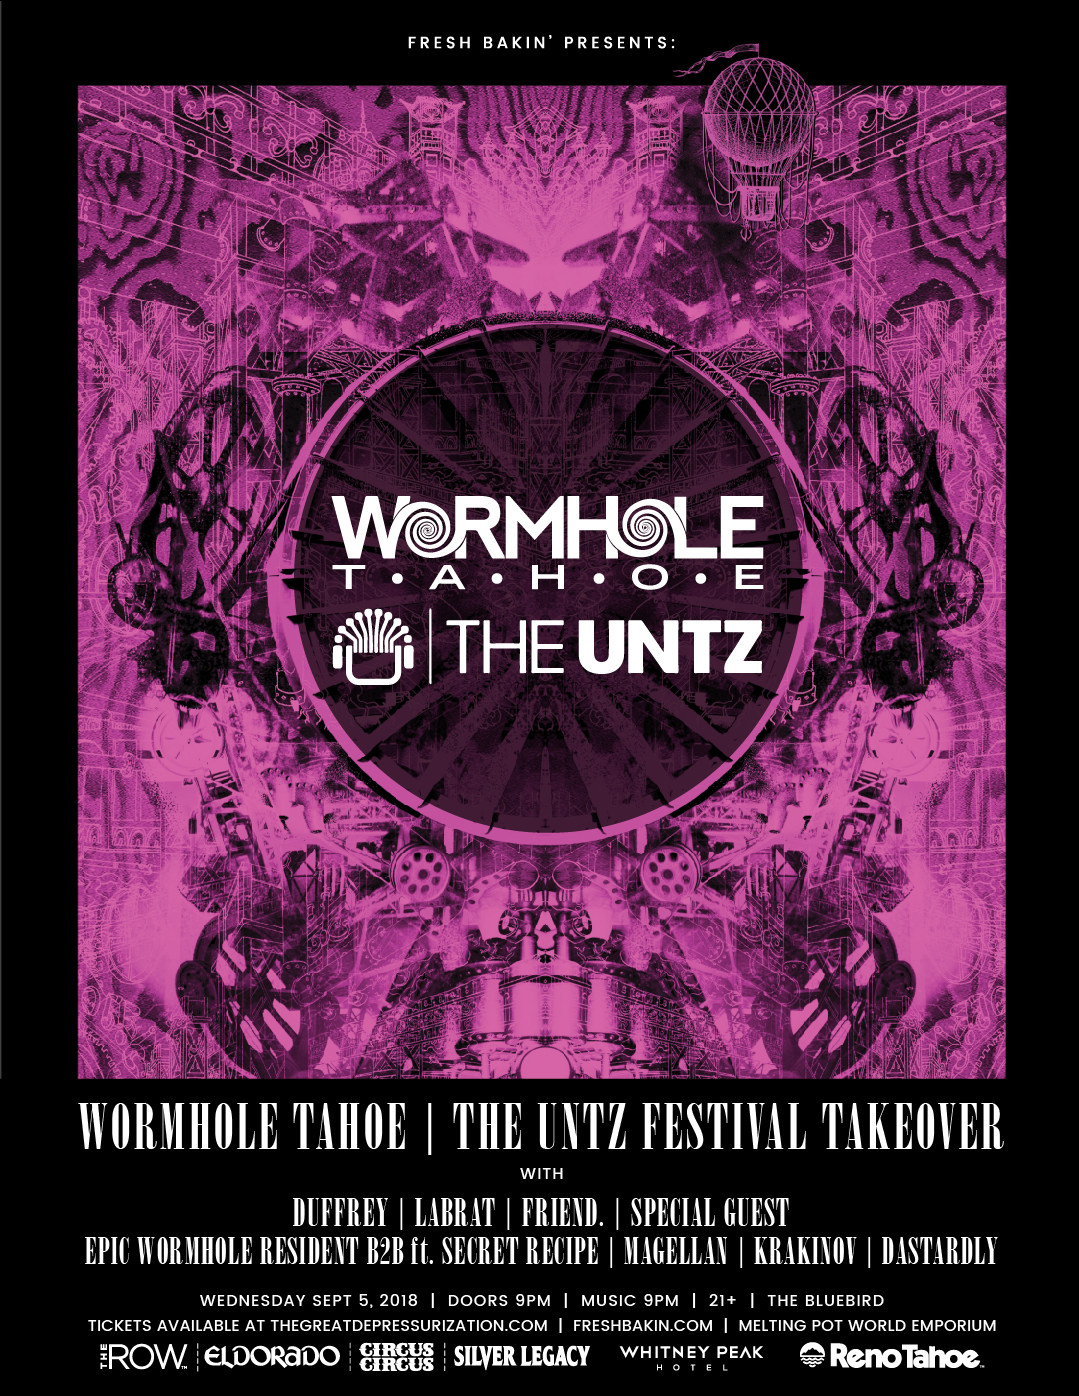 Wormhole Tahoe x The Untz Festival